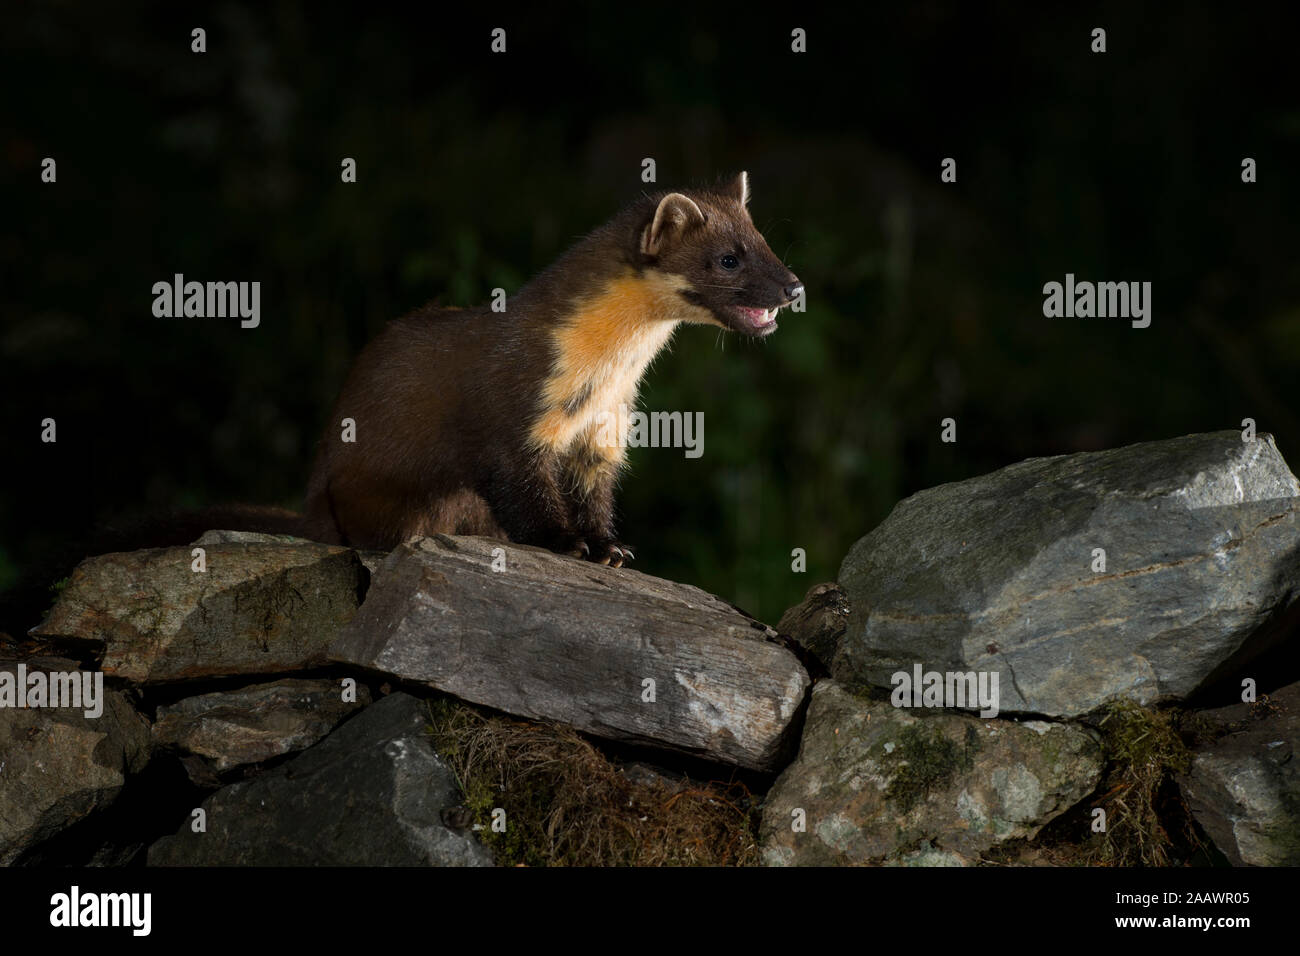 Portrait of pine marten sitting on stones at night Stock Photo